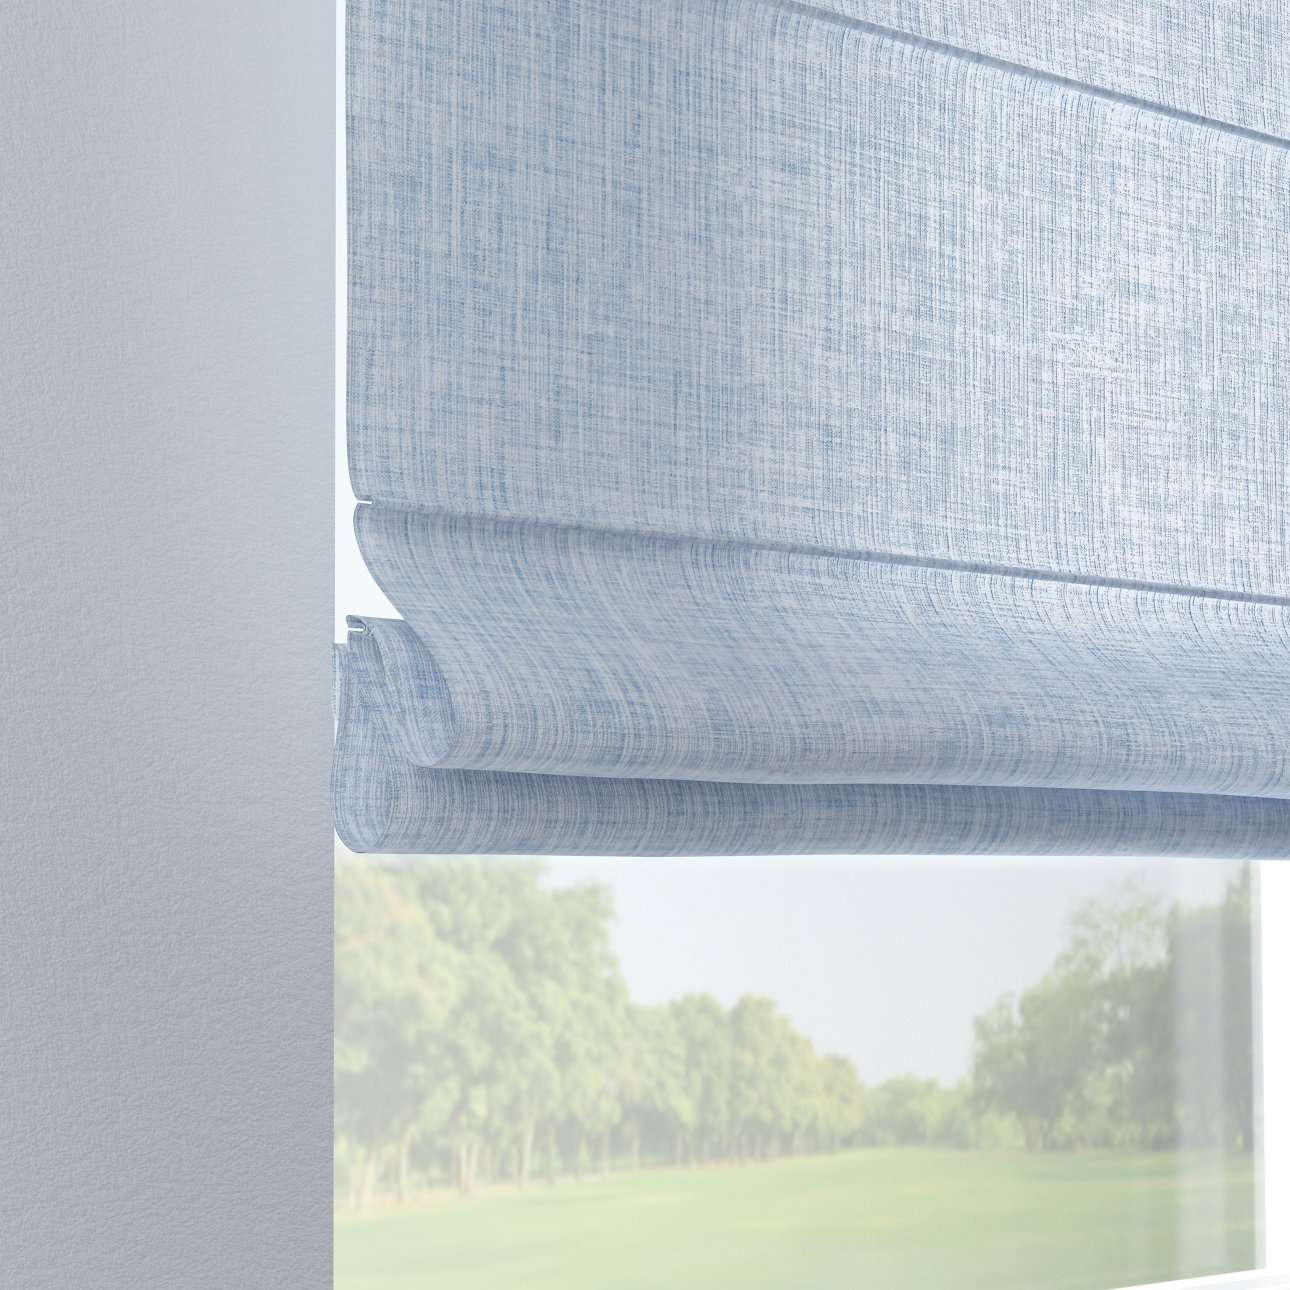 Verona tab top roman blind 80 x 170 cm (31.5 x 67 inch) in collection Aquarelle, fabric: 140-74